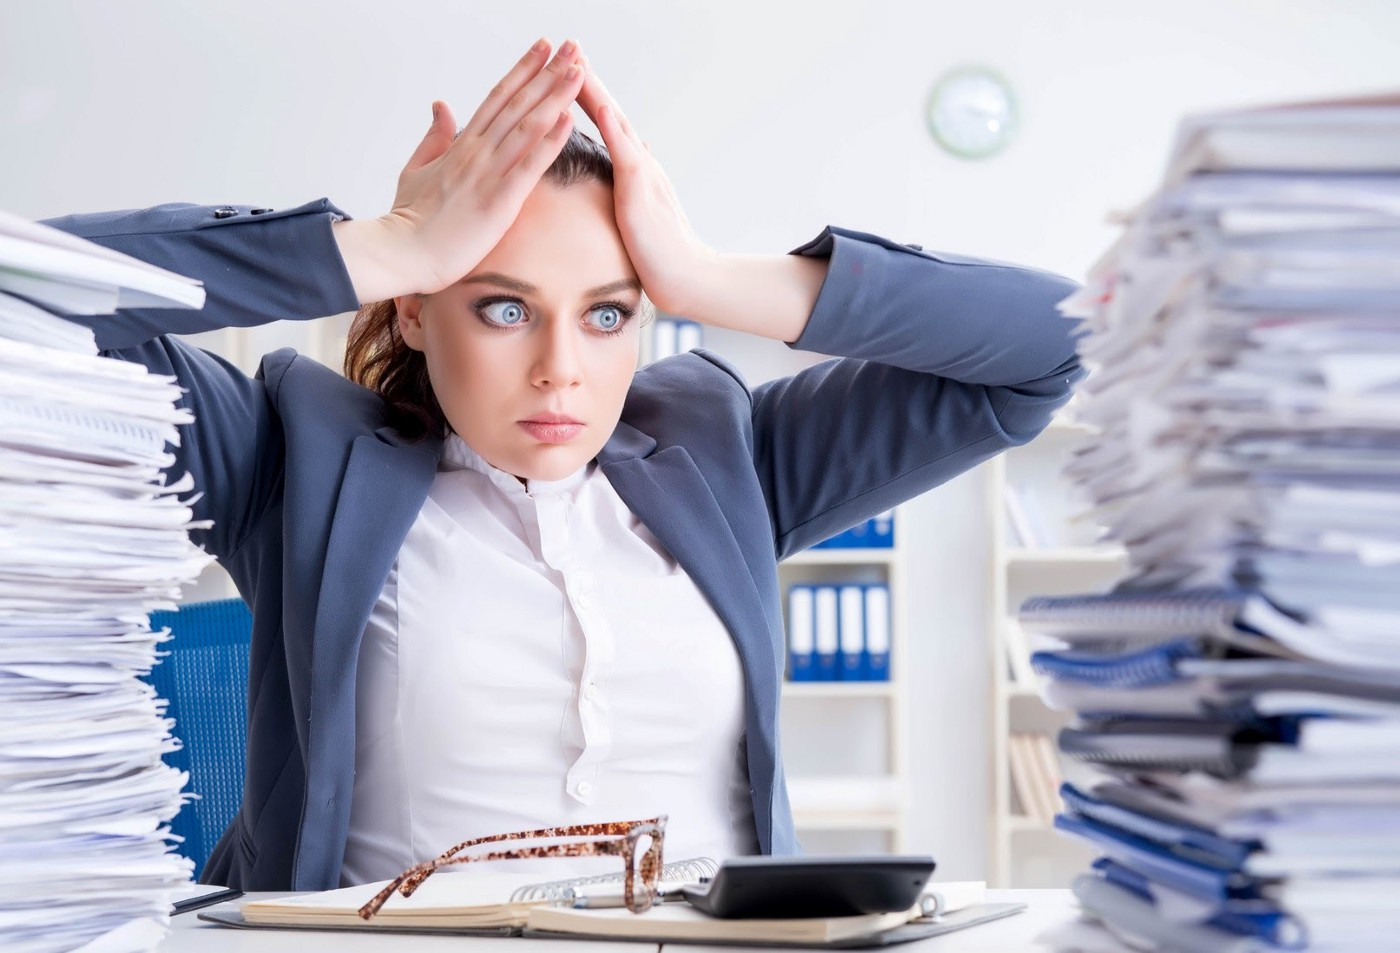 Overworked businesswoman with piles of papers surrounding her